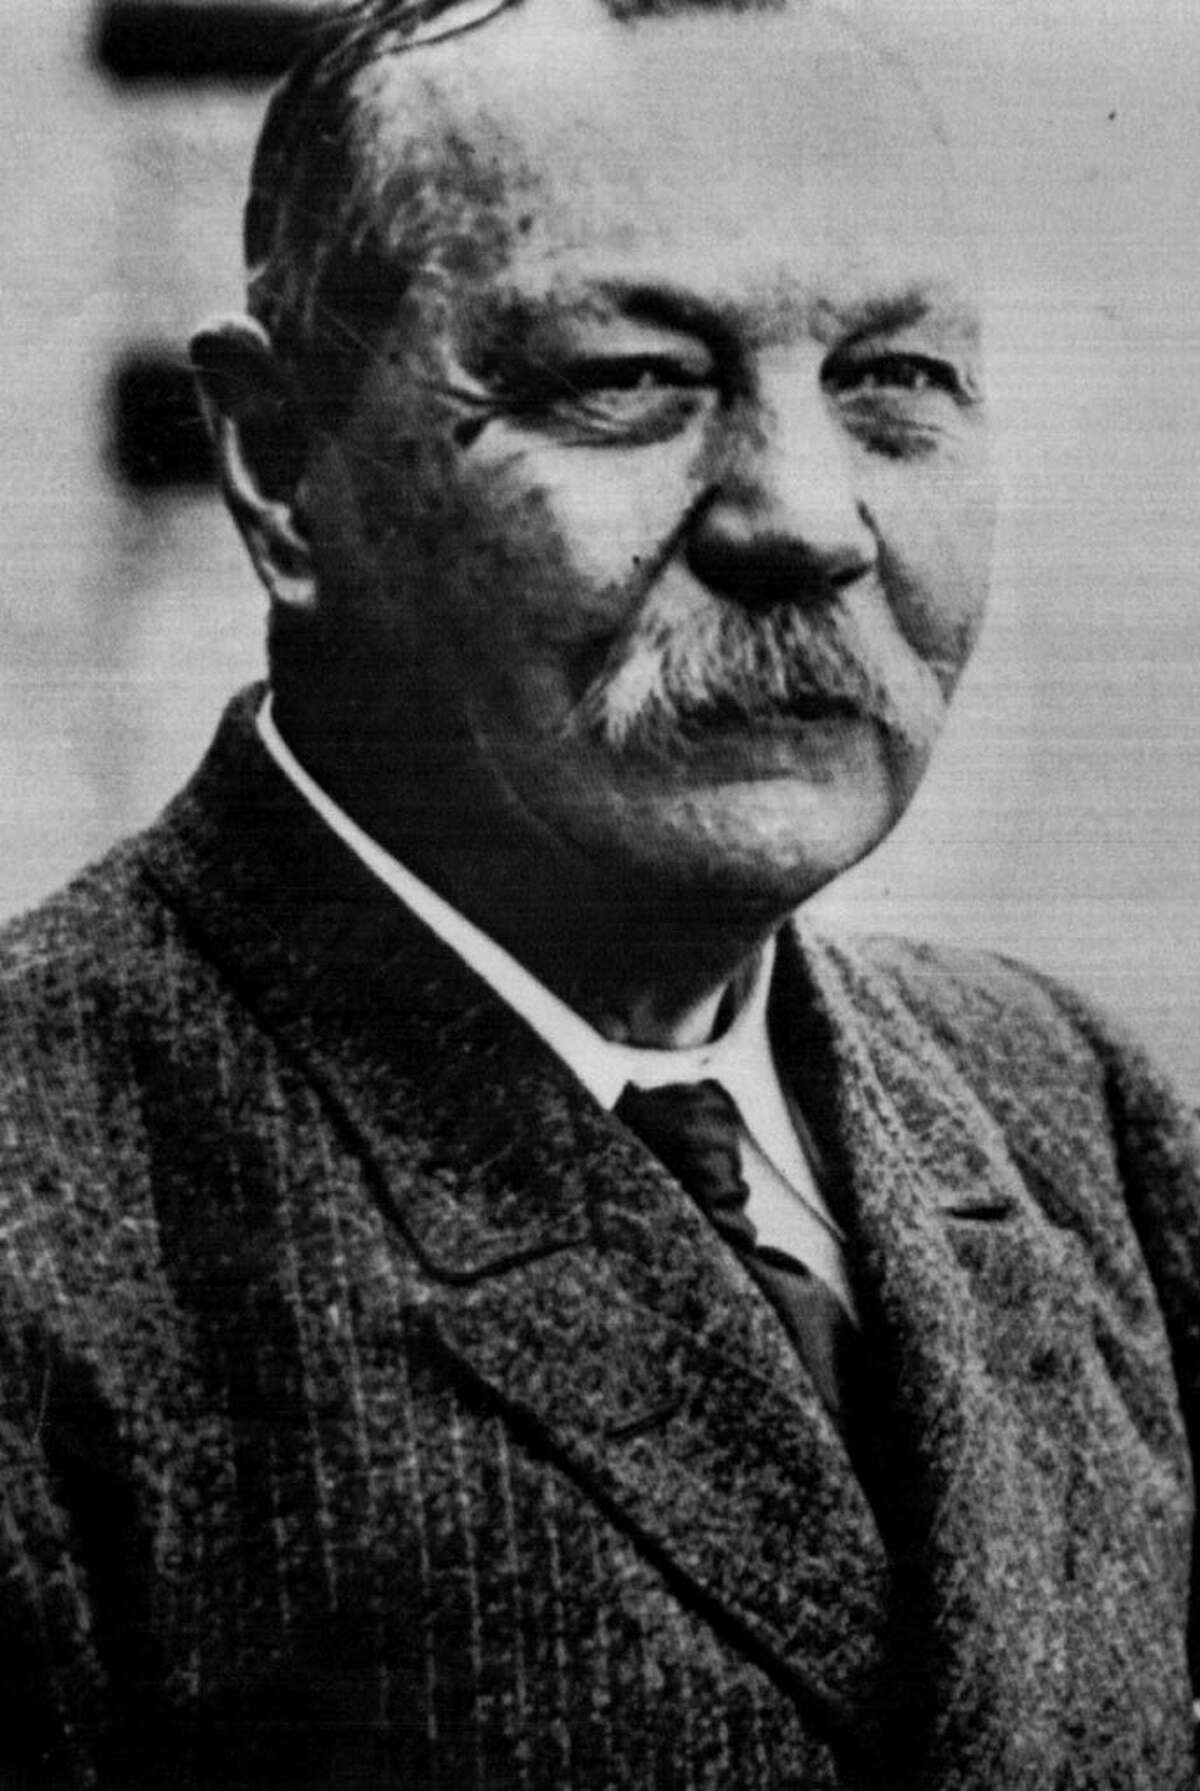 Sir Arthur Conan Doyle, author of the Sherlock Holmes detective series, in an undated archive photo. (Archive)